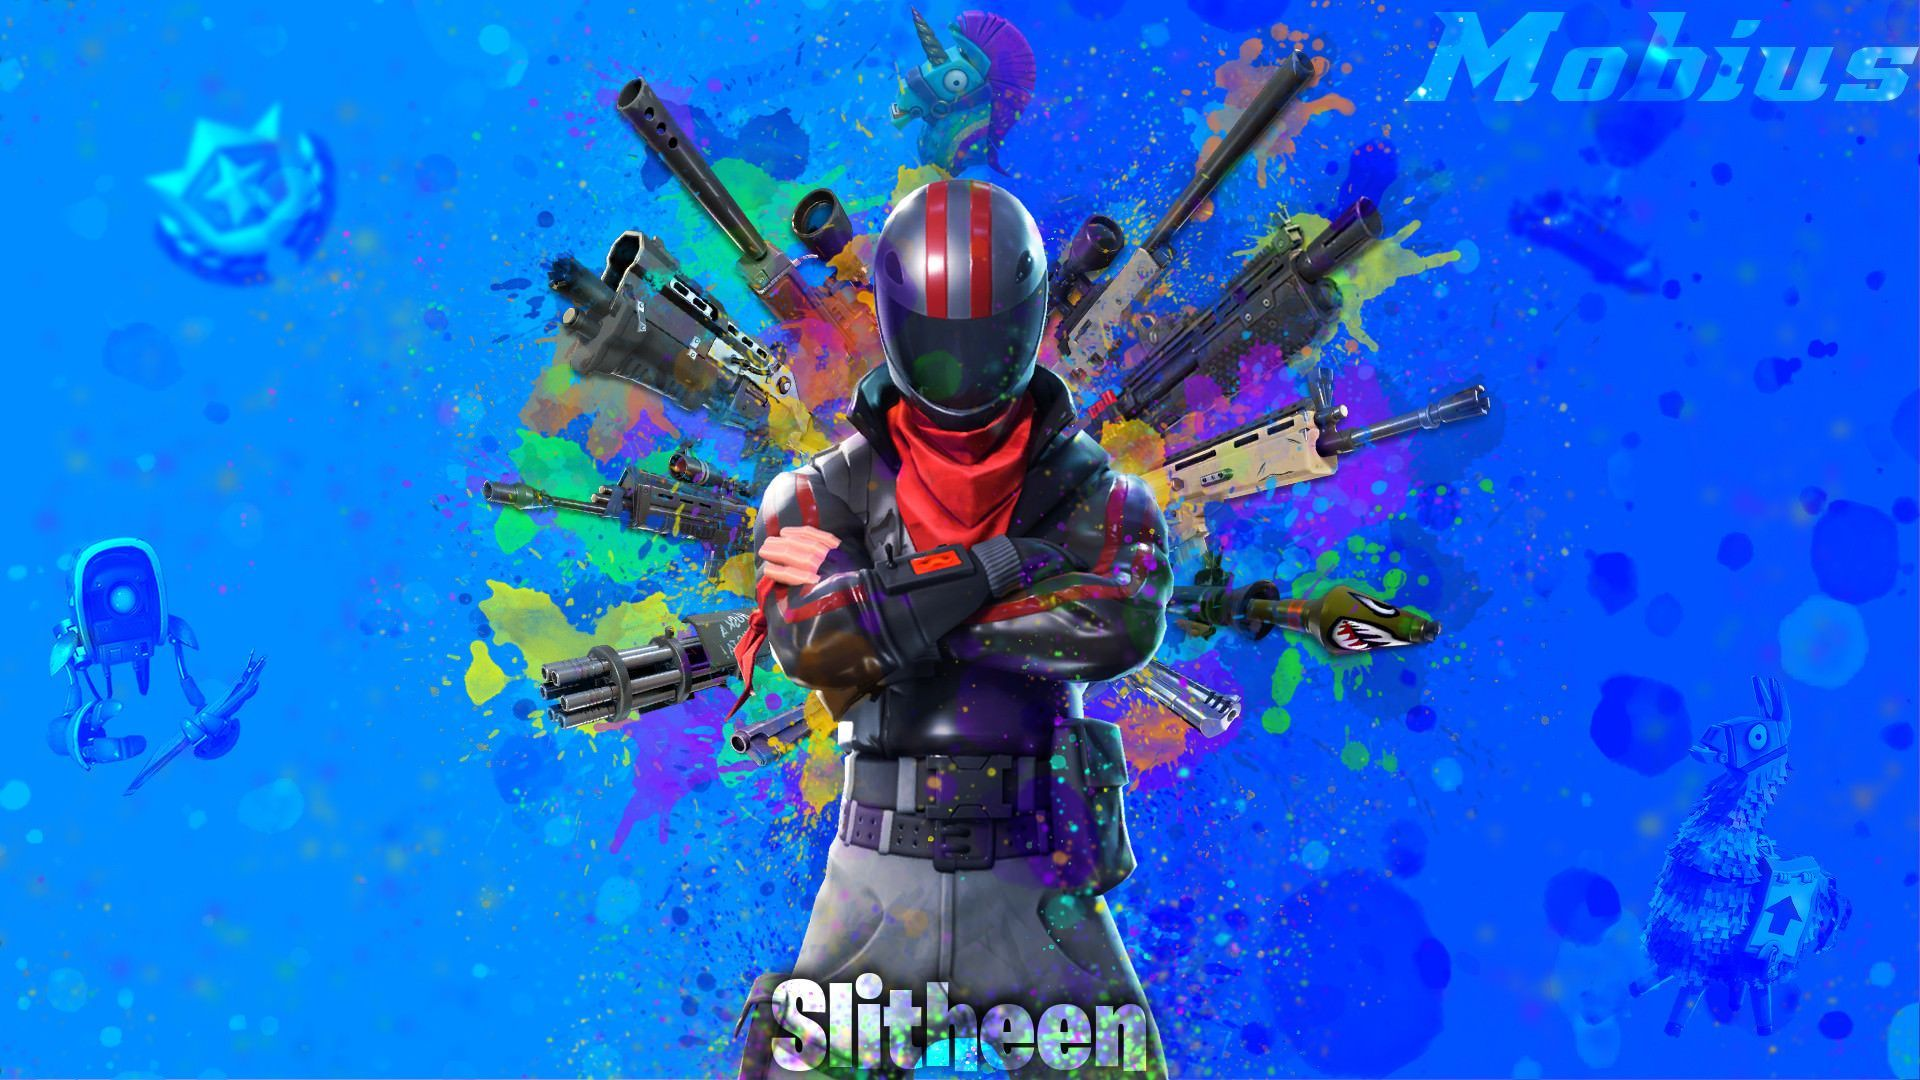 1080 Fortnite Wallpapers Top Free 1080 Fortnite Backgrounds Wallpaperaccess